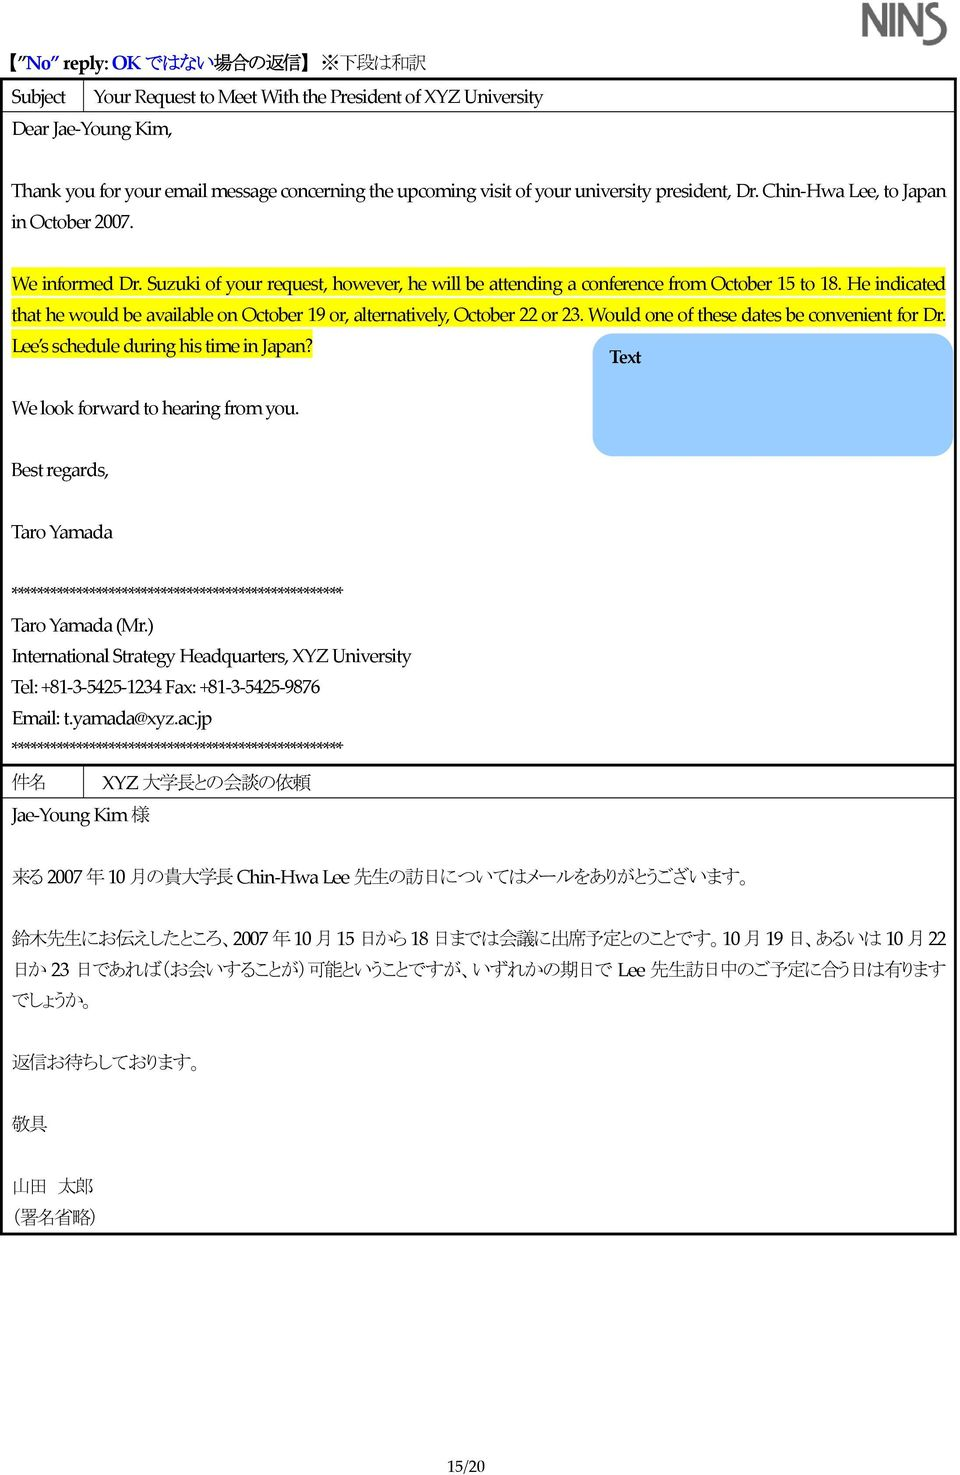 He indicated that he would be available on October 19 or, alternatively, October 22 or 23. Would one of these dates be convenient for Dr. Lee s schedule during his time in Japan?